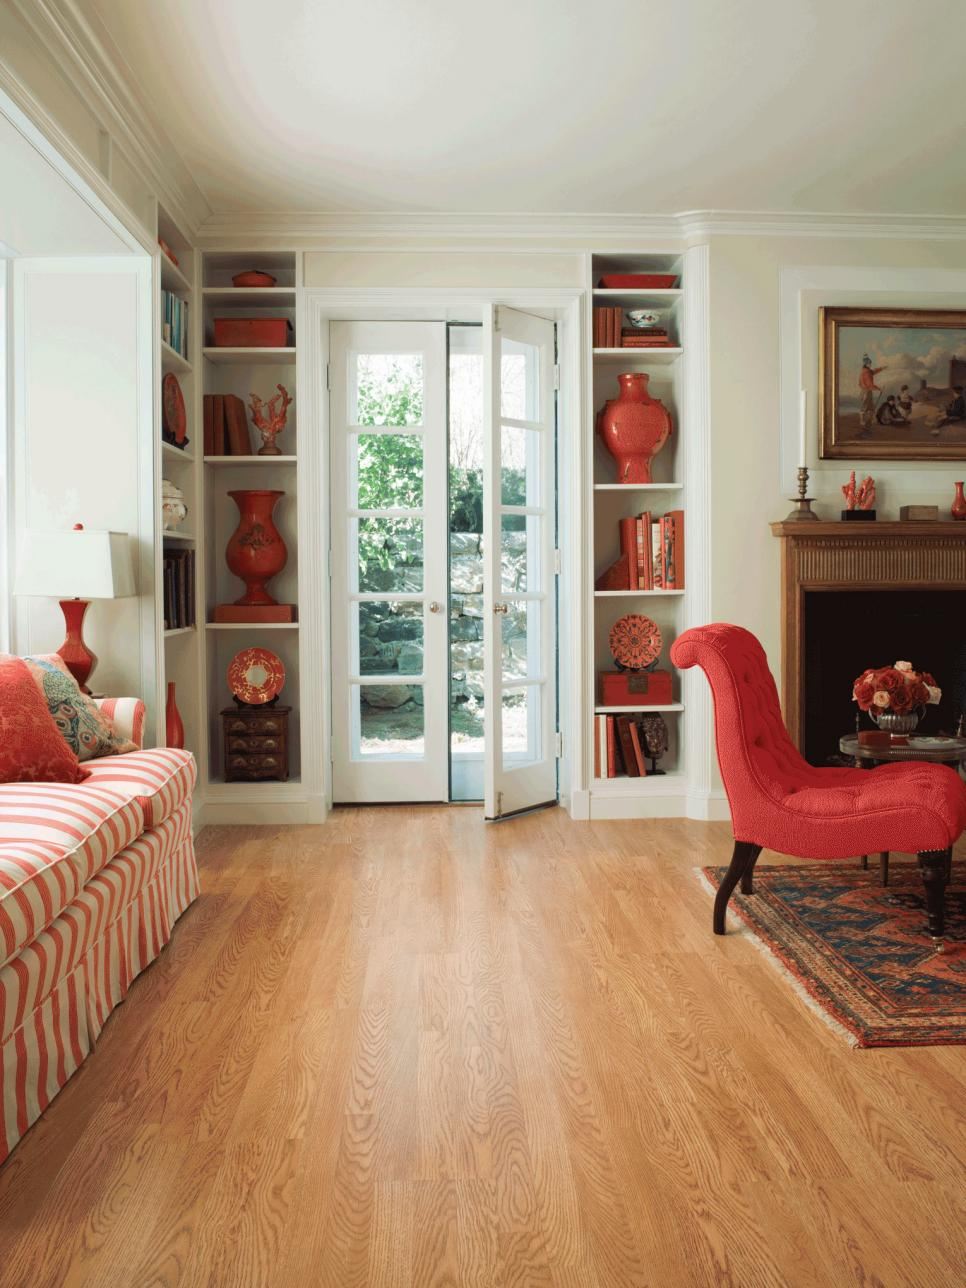 Laminate Flooring Benefits And Ideas For Luxurious Designs Floor Heating Systems Inc